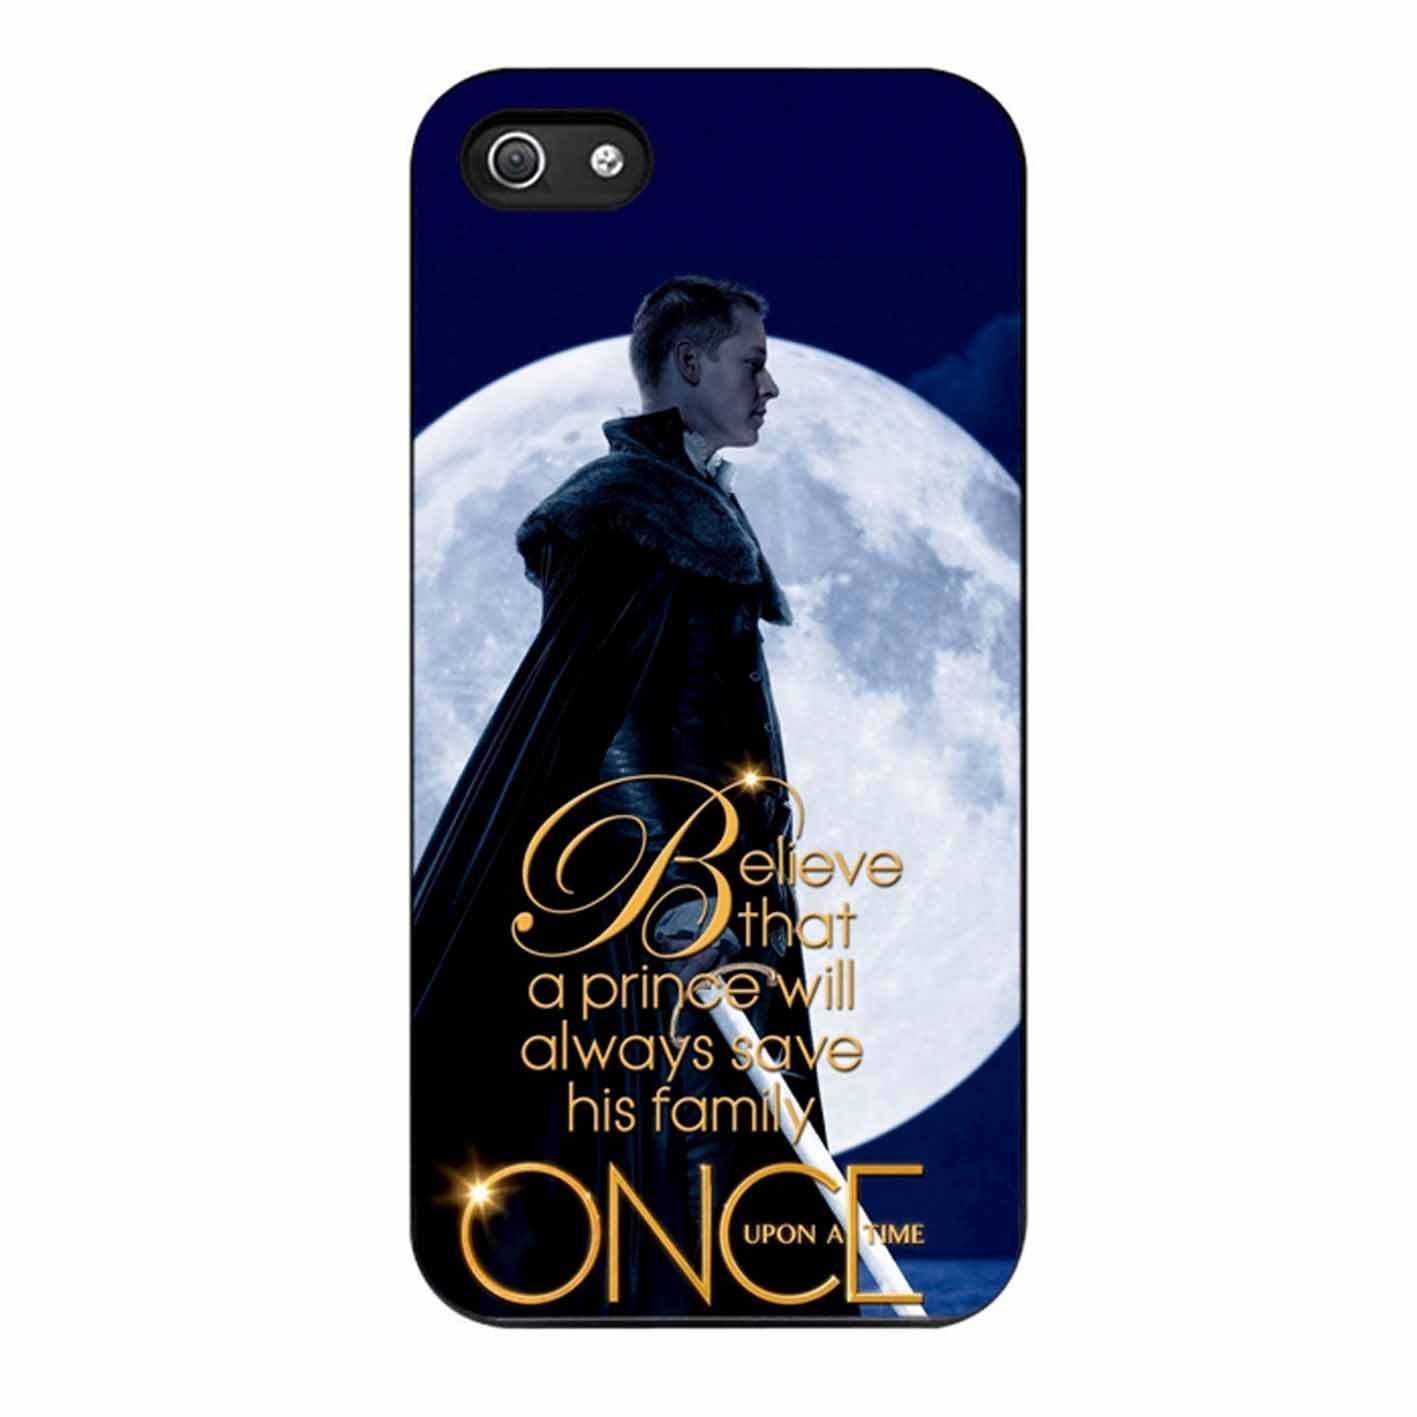 Once Upon A Time Believe A Prince Will Always Save His Family iPhone 5/5s Case